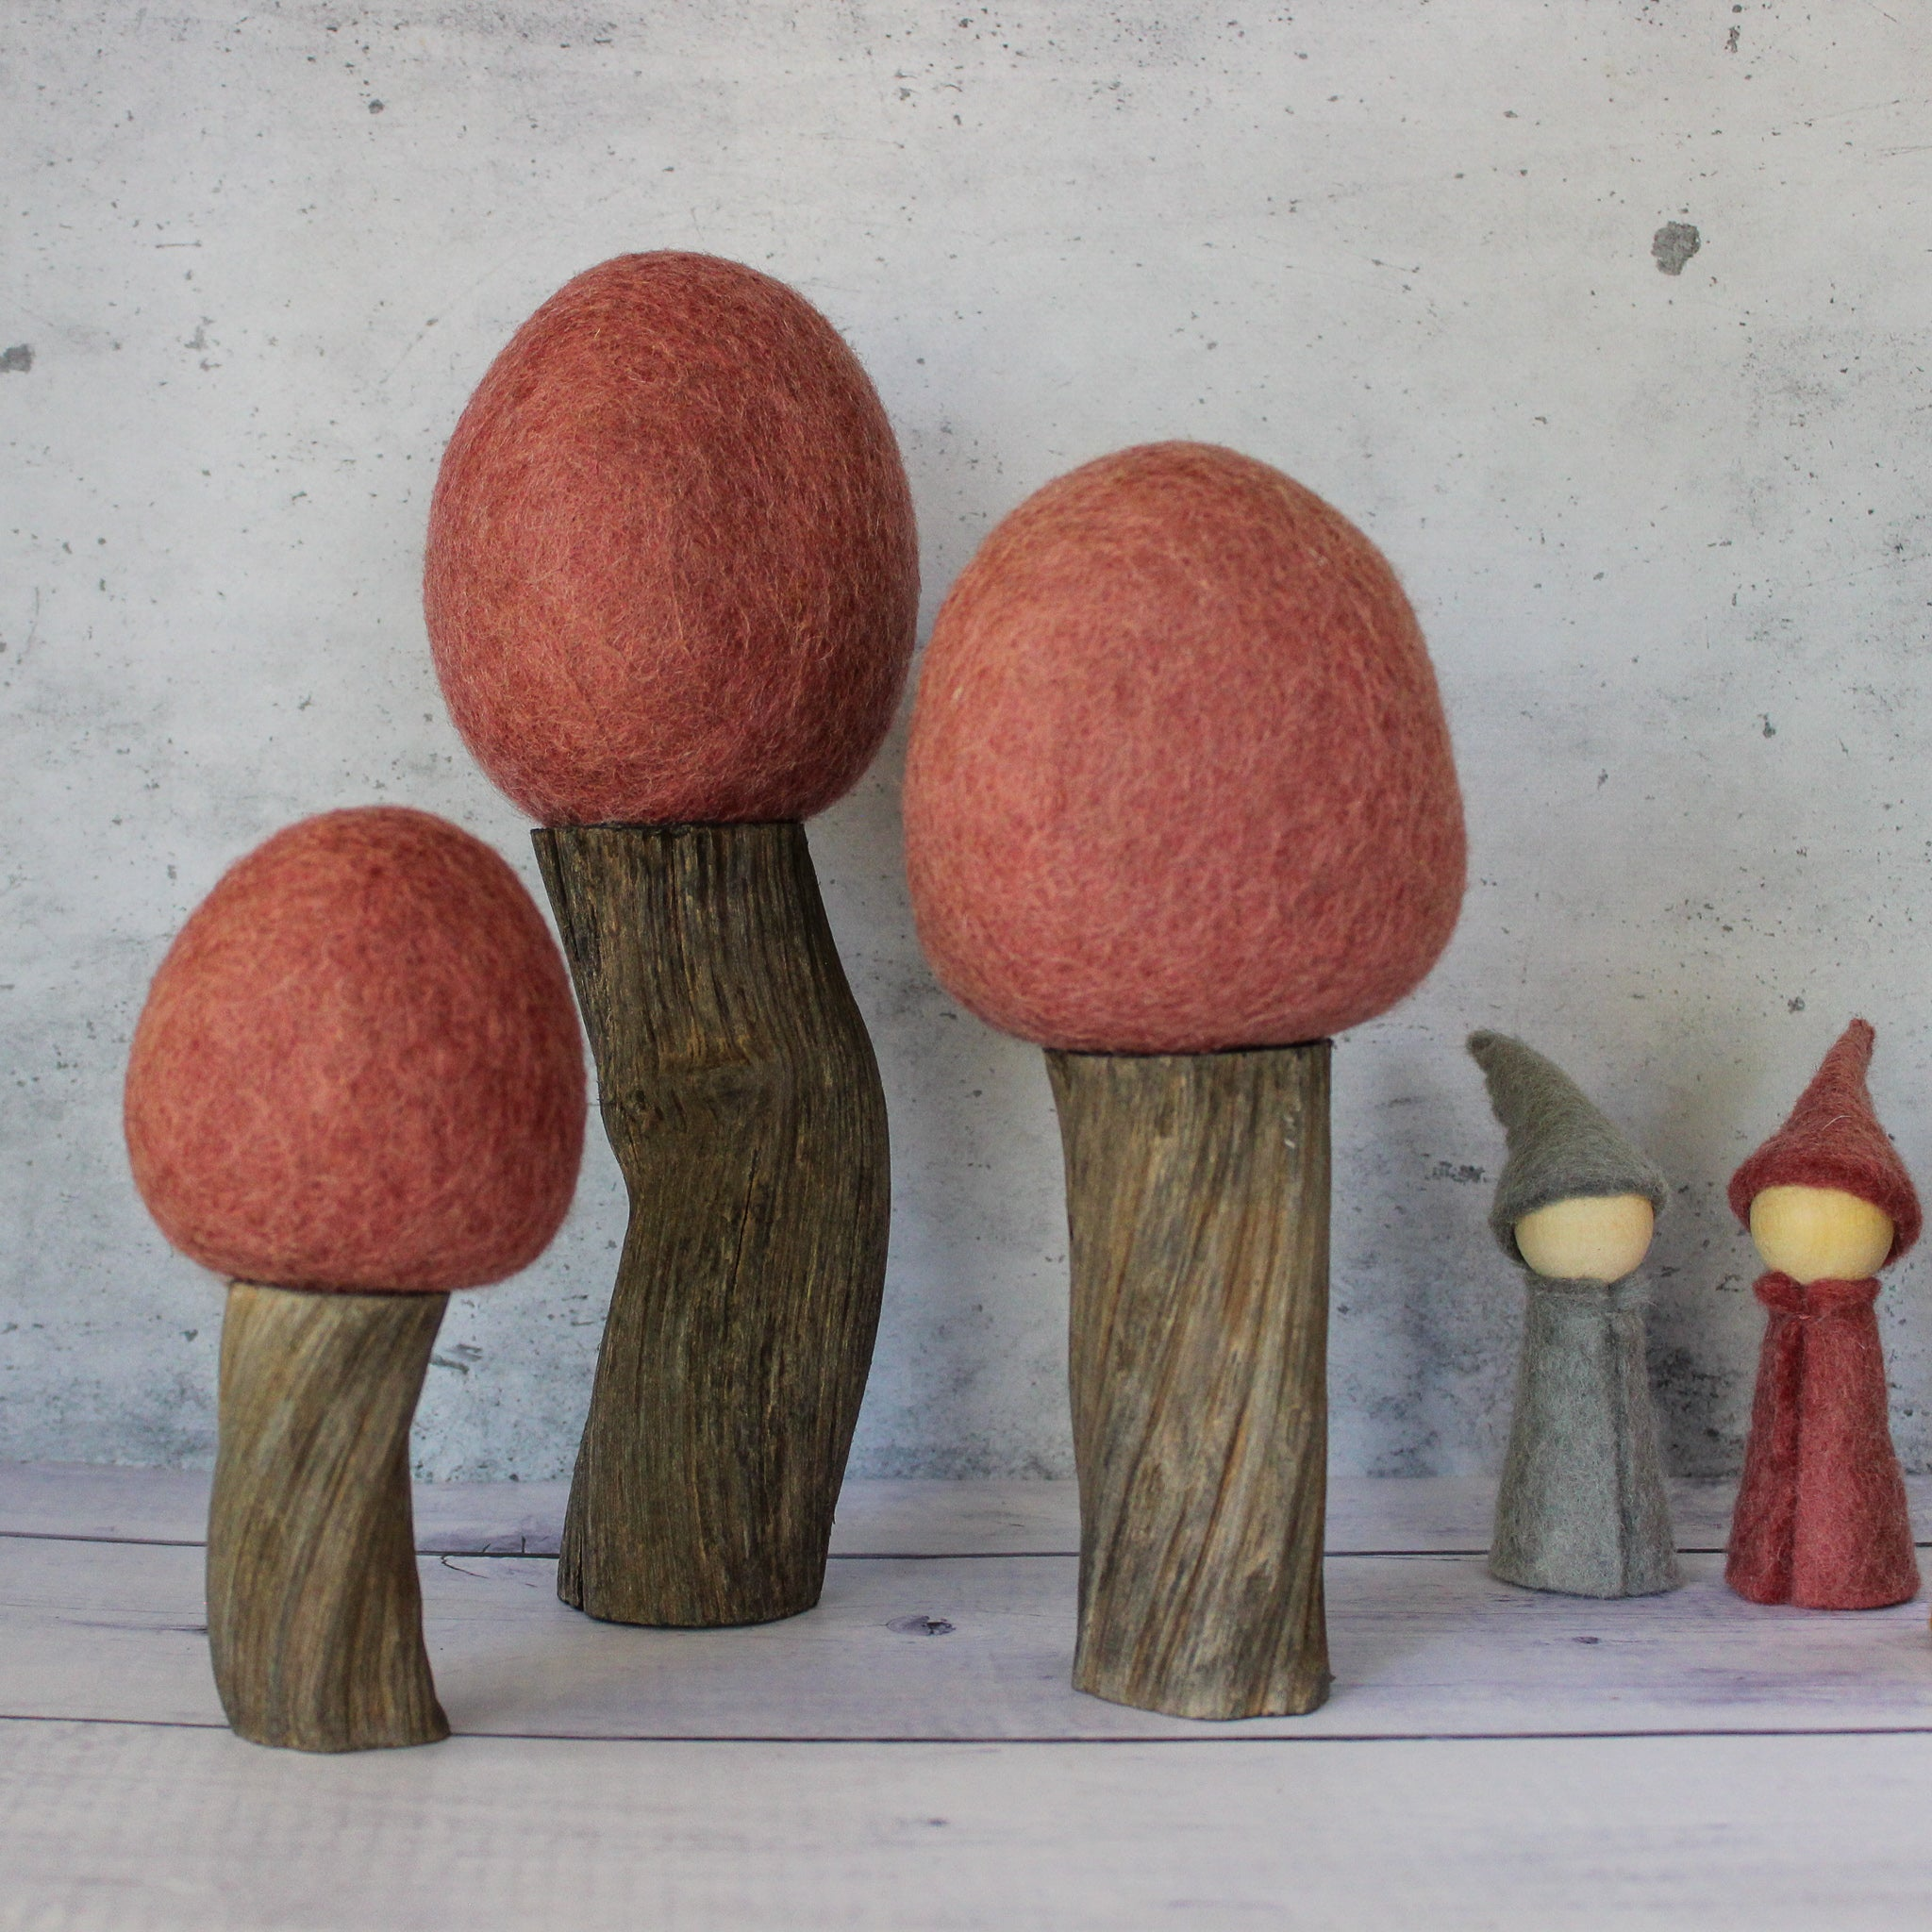 Felt Top Trees : Earth